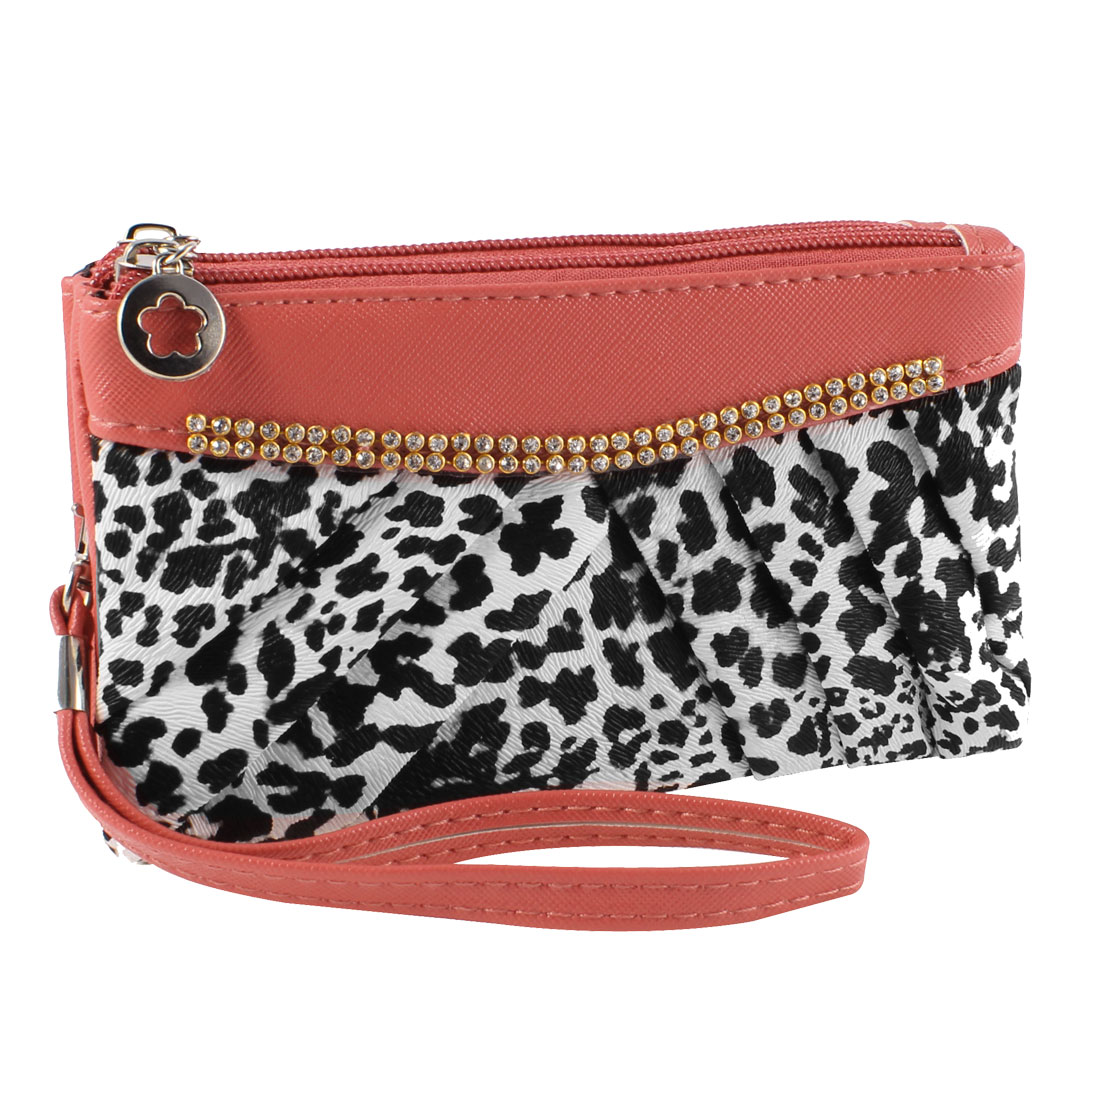 Dual Compartment Zip Up Leopard Print Faux Leather Wallet Purse Watermelon Red